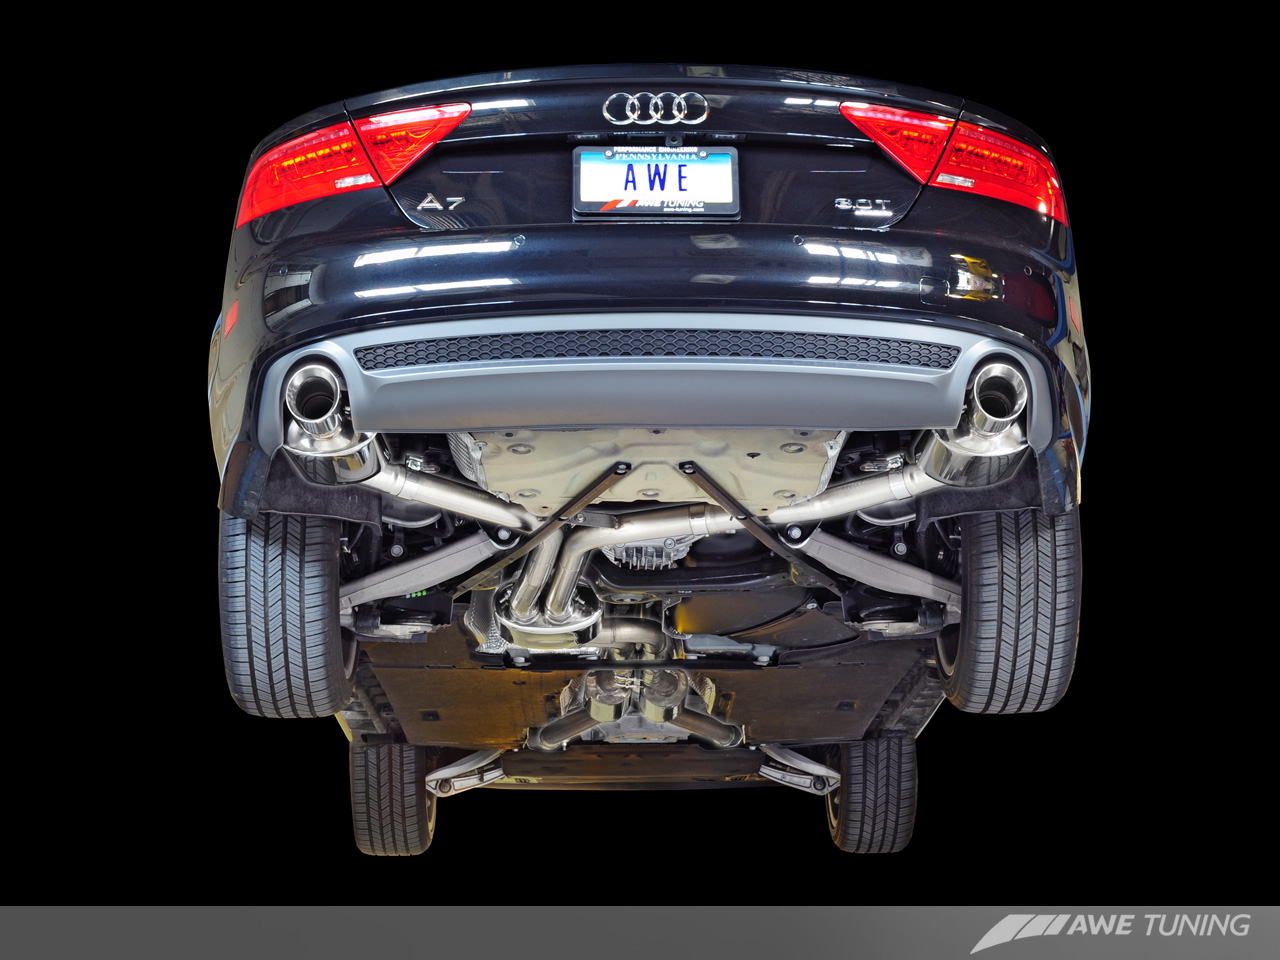 The AWE Tuning Audi A7 Touring Edition Exhaust has arrived. - Page 2 - AudiWorld Forums